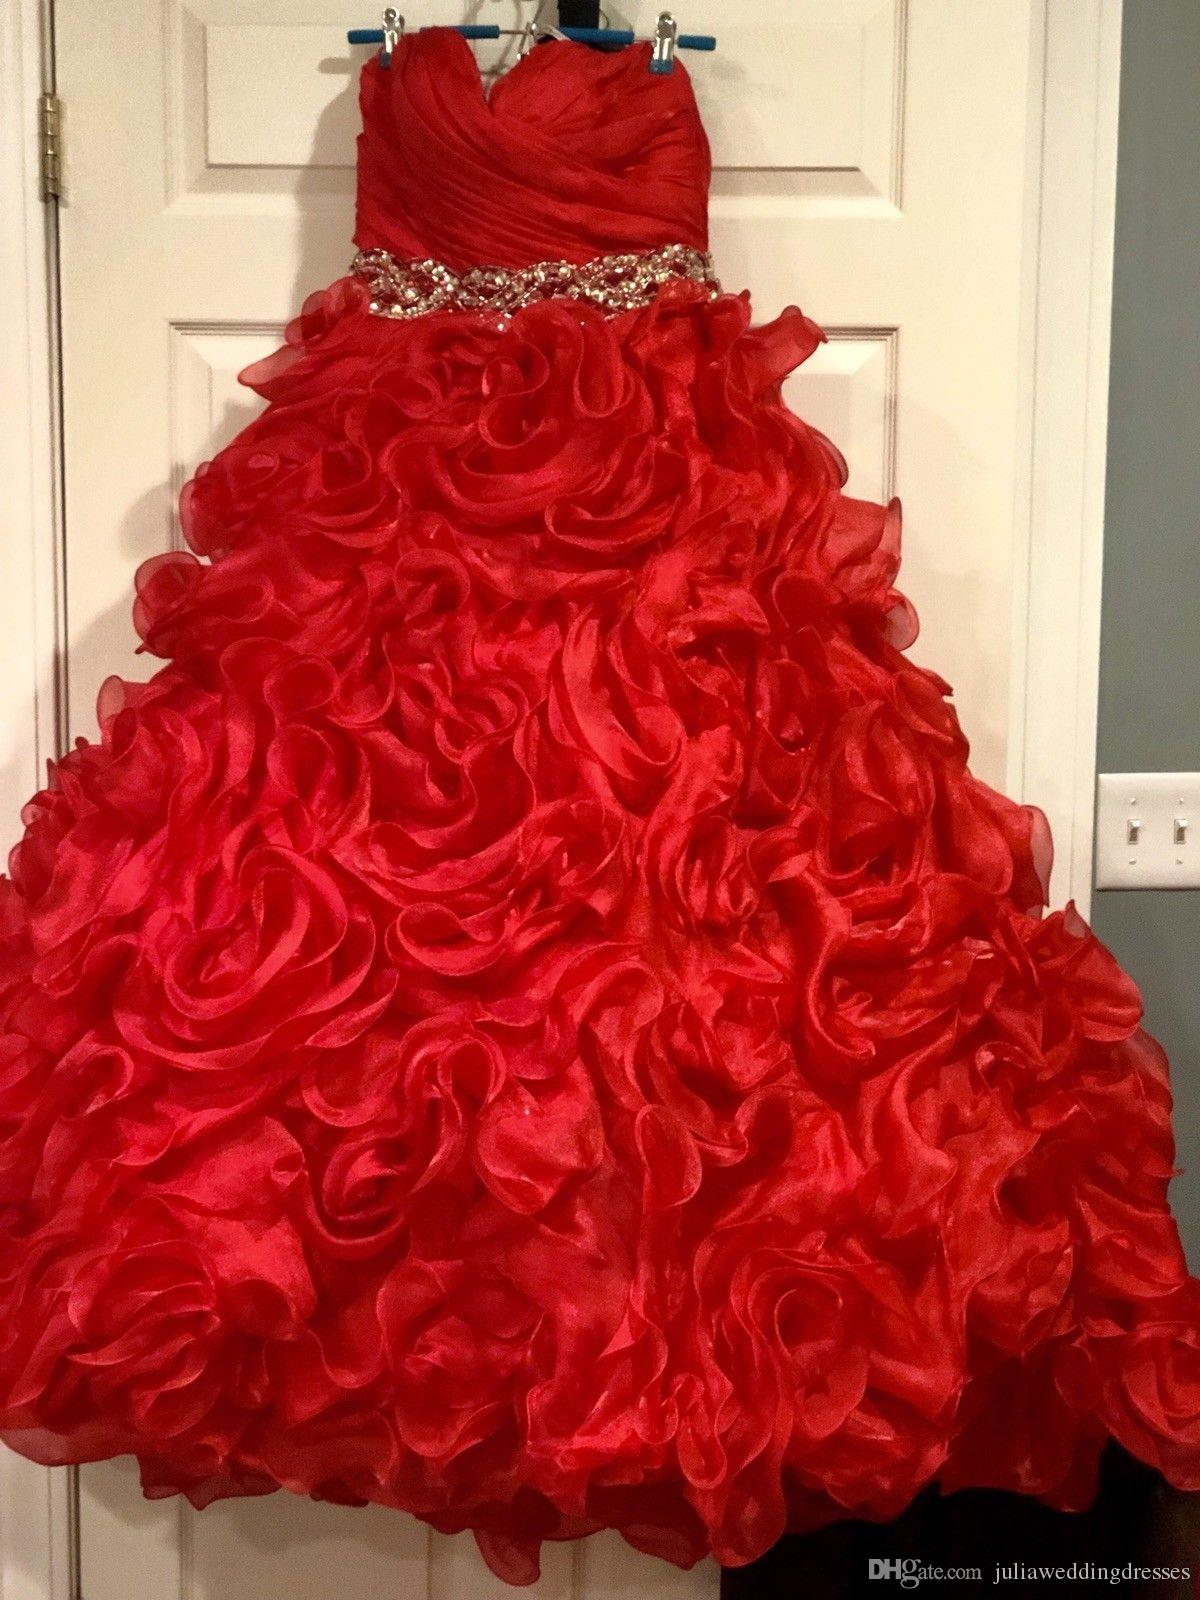 69fad5d2f8d2 2019 New Stunning Red Puffy Ball Gown Quinceanera Dresses Crystals For 15  Years Sweet 16 Plus Size Pageant Prom Party Gown QC1067 Quinceanera Dresses  ...